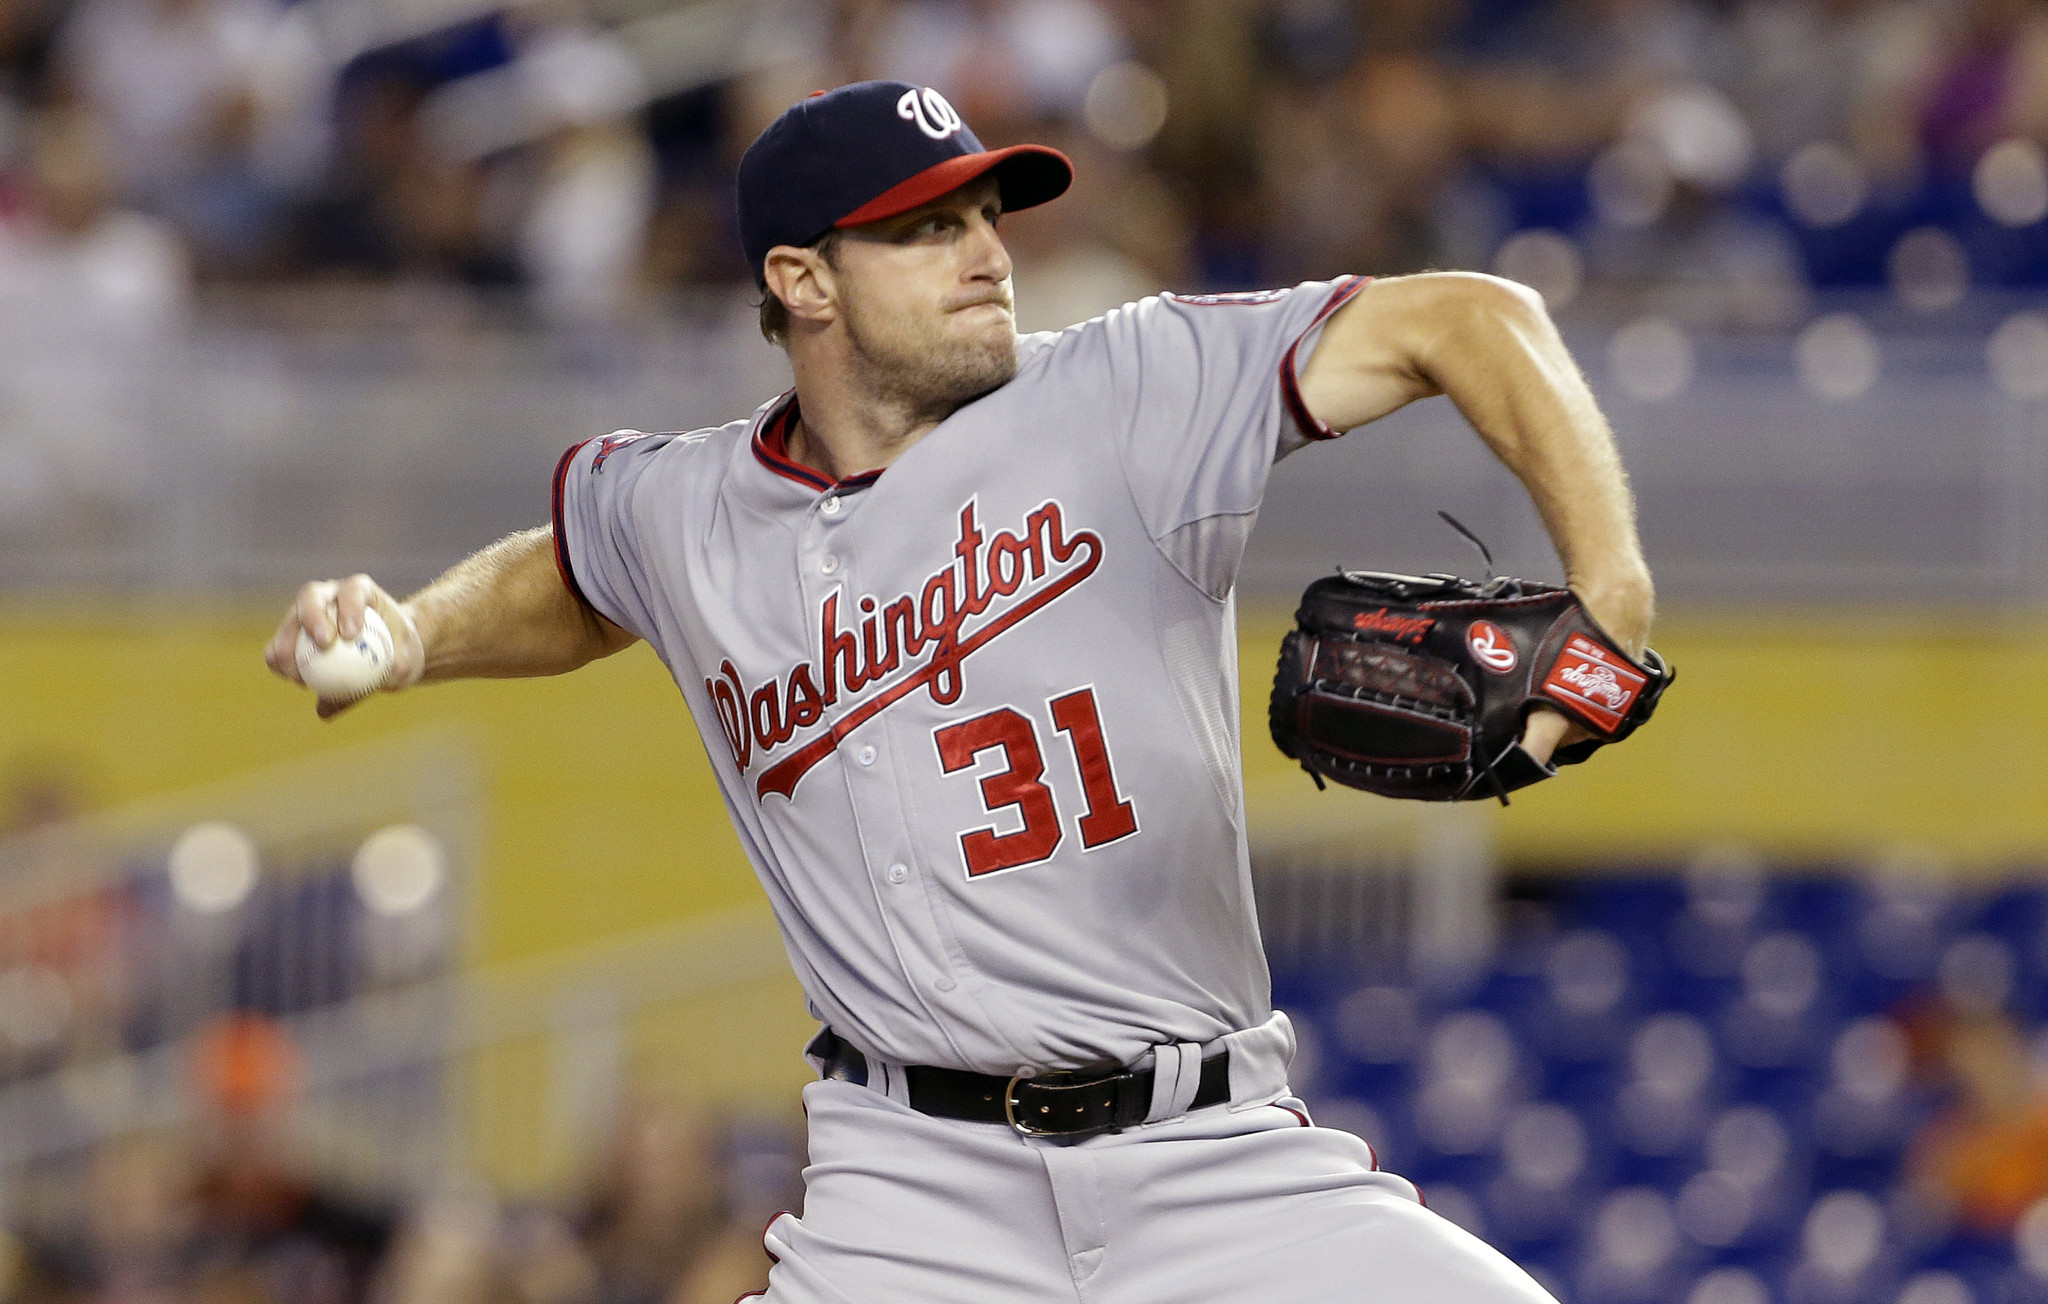 After crazy win Cubs' next obstacle is Max Scherzer